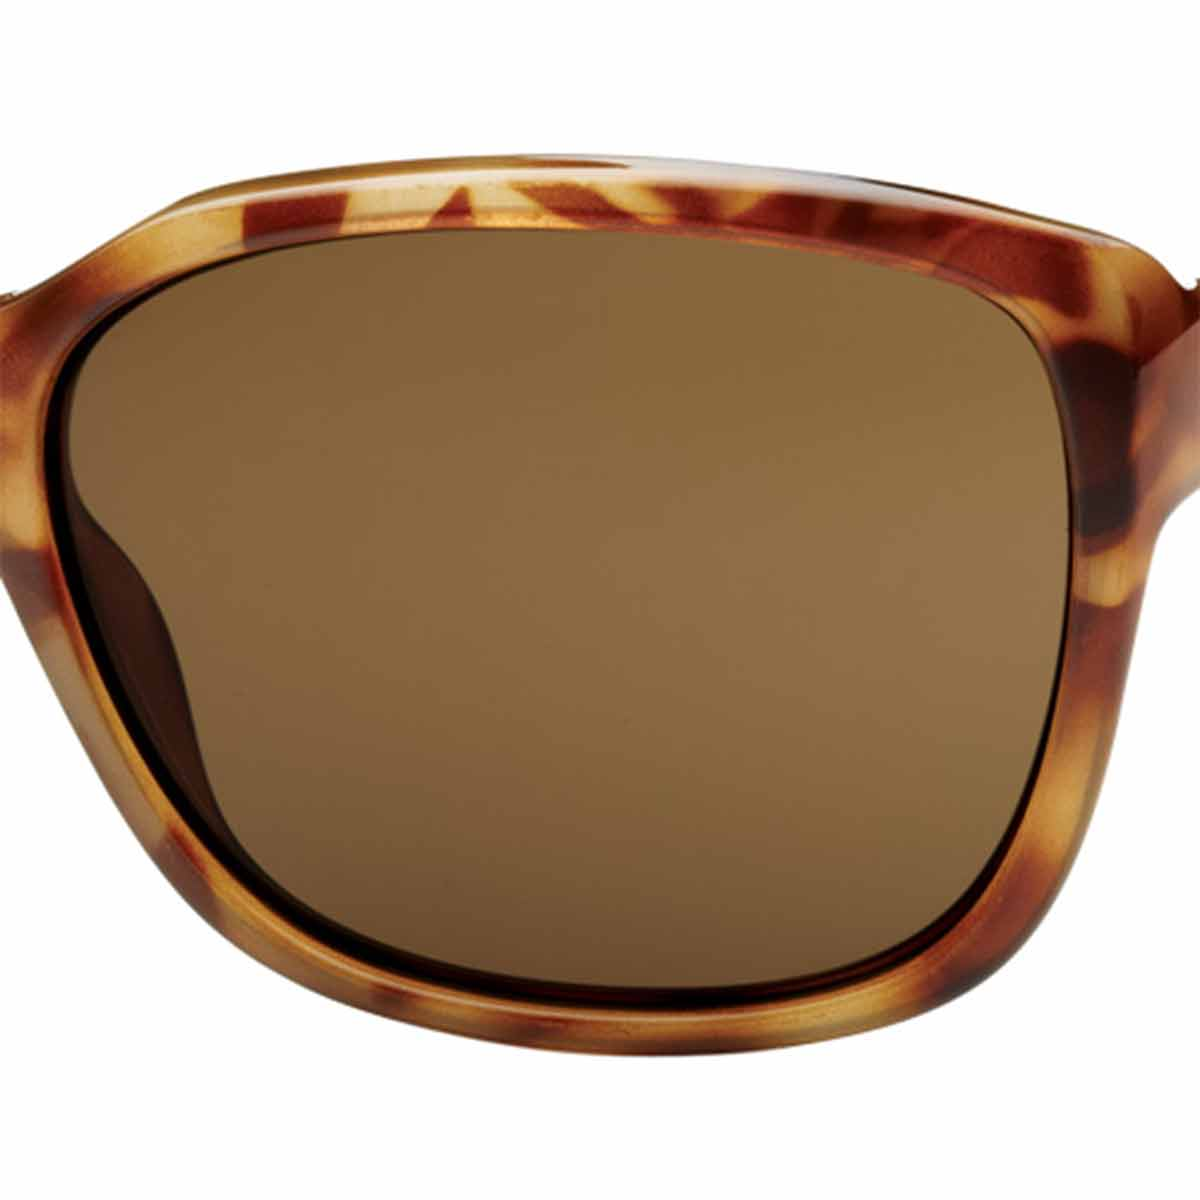 df3571f98c Each Suncloud polarized lens is manufactured with optical grade  Polycarbonate using an injection molding process to ensure exceptional  clarity and ...